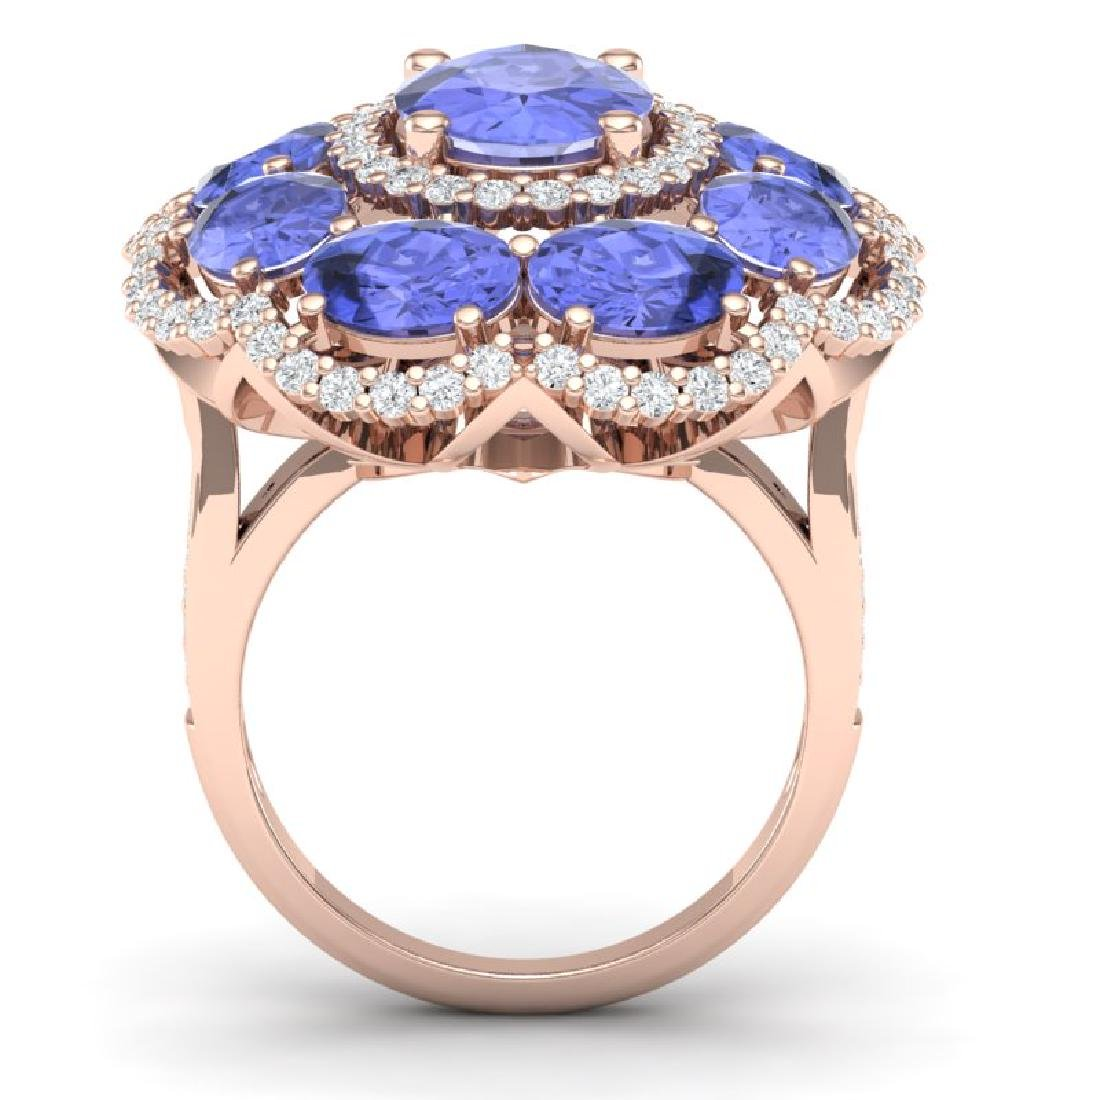 15.24 CTW Royalty Tanzanite & VS Diamond Ring 18K Rose